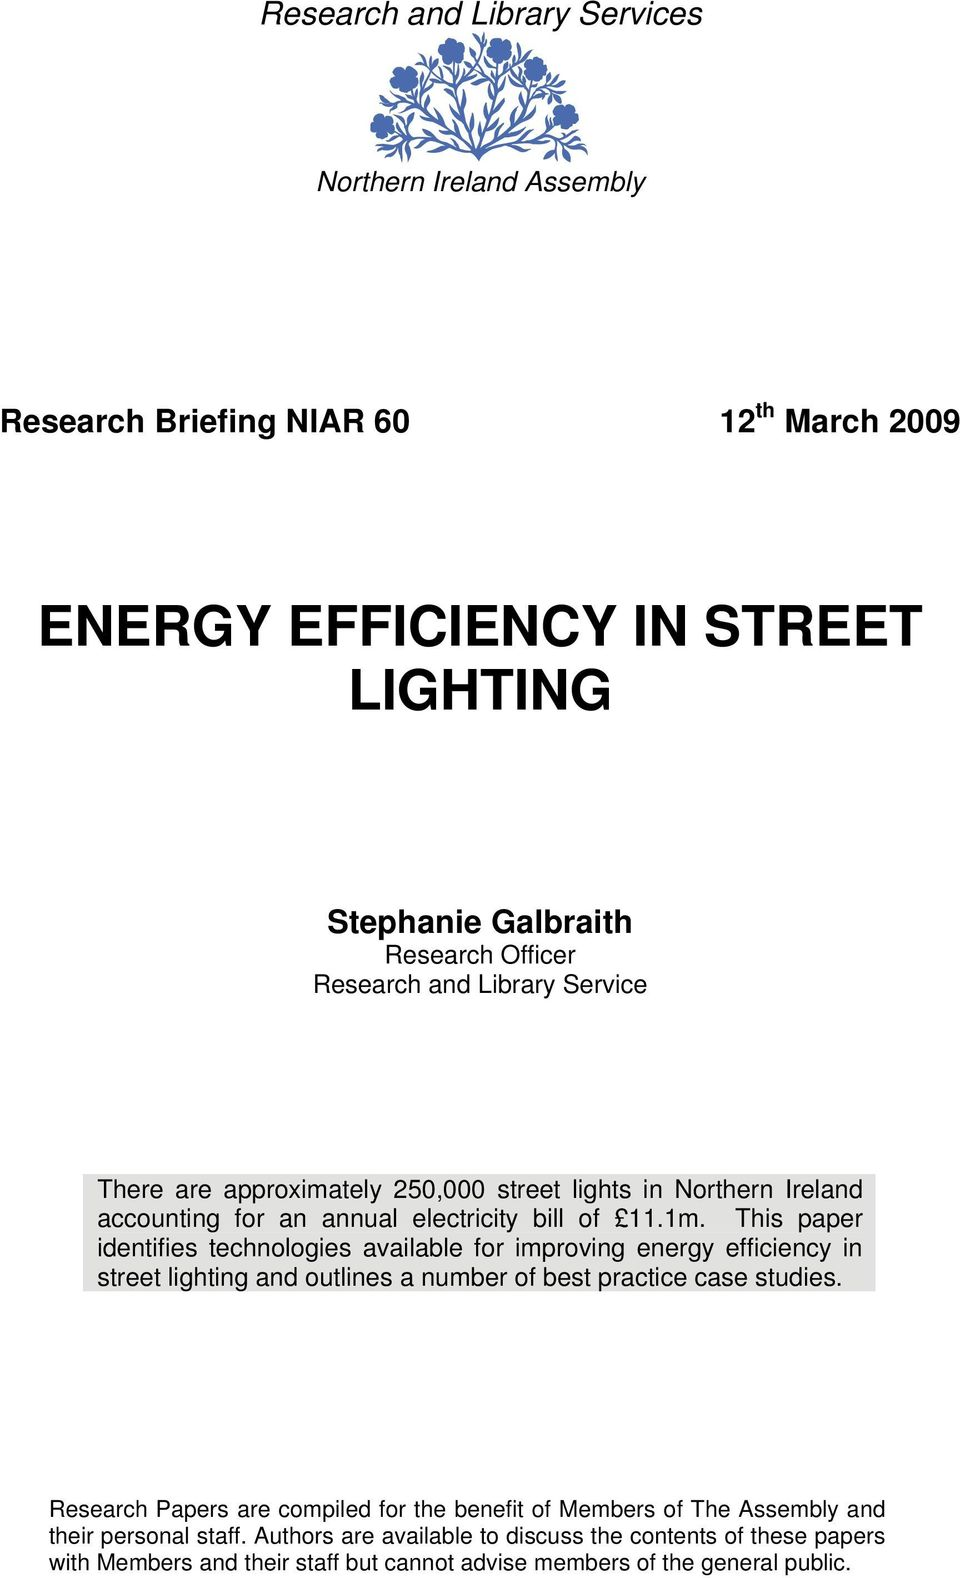 This paper identifies technologies available for improving energy efficiency in street lighting and outlines a number of best practice case studies.